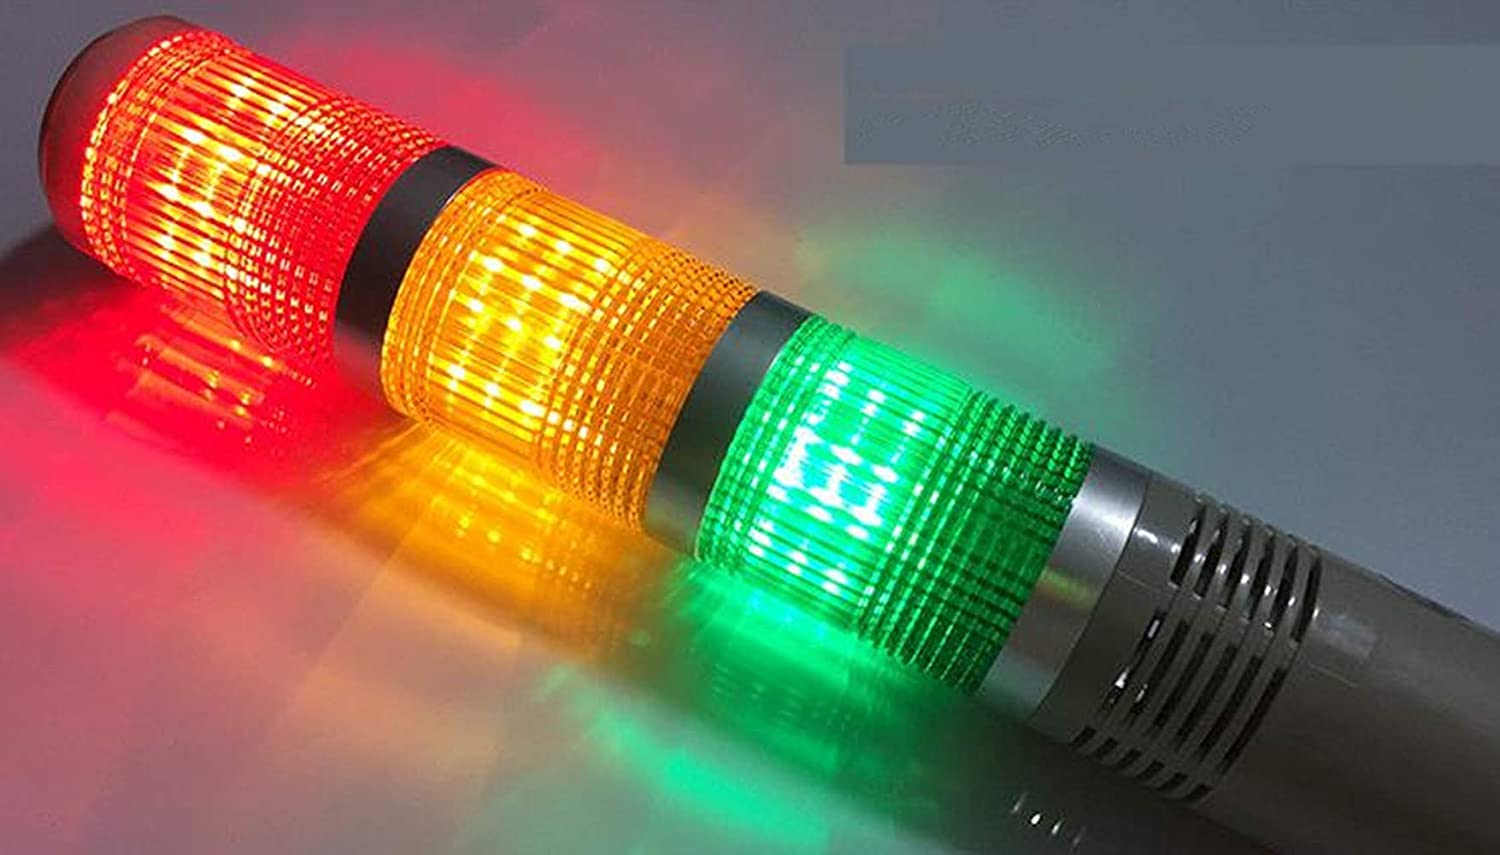 3 LED, 12V YJINGRUI LED Industrial Signal Tower Light Safety Stack Alarm Warning Lamp Multilayer Rod Type With buzzer For CNC Machines